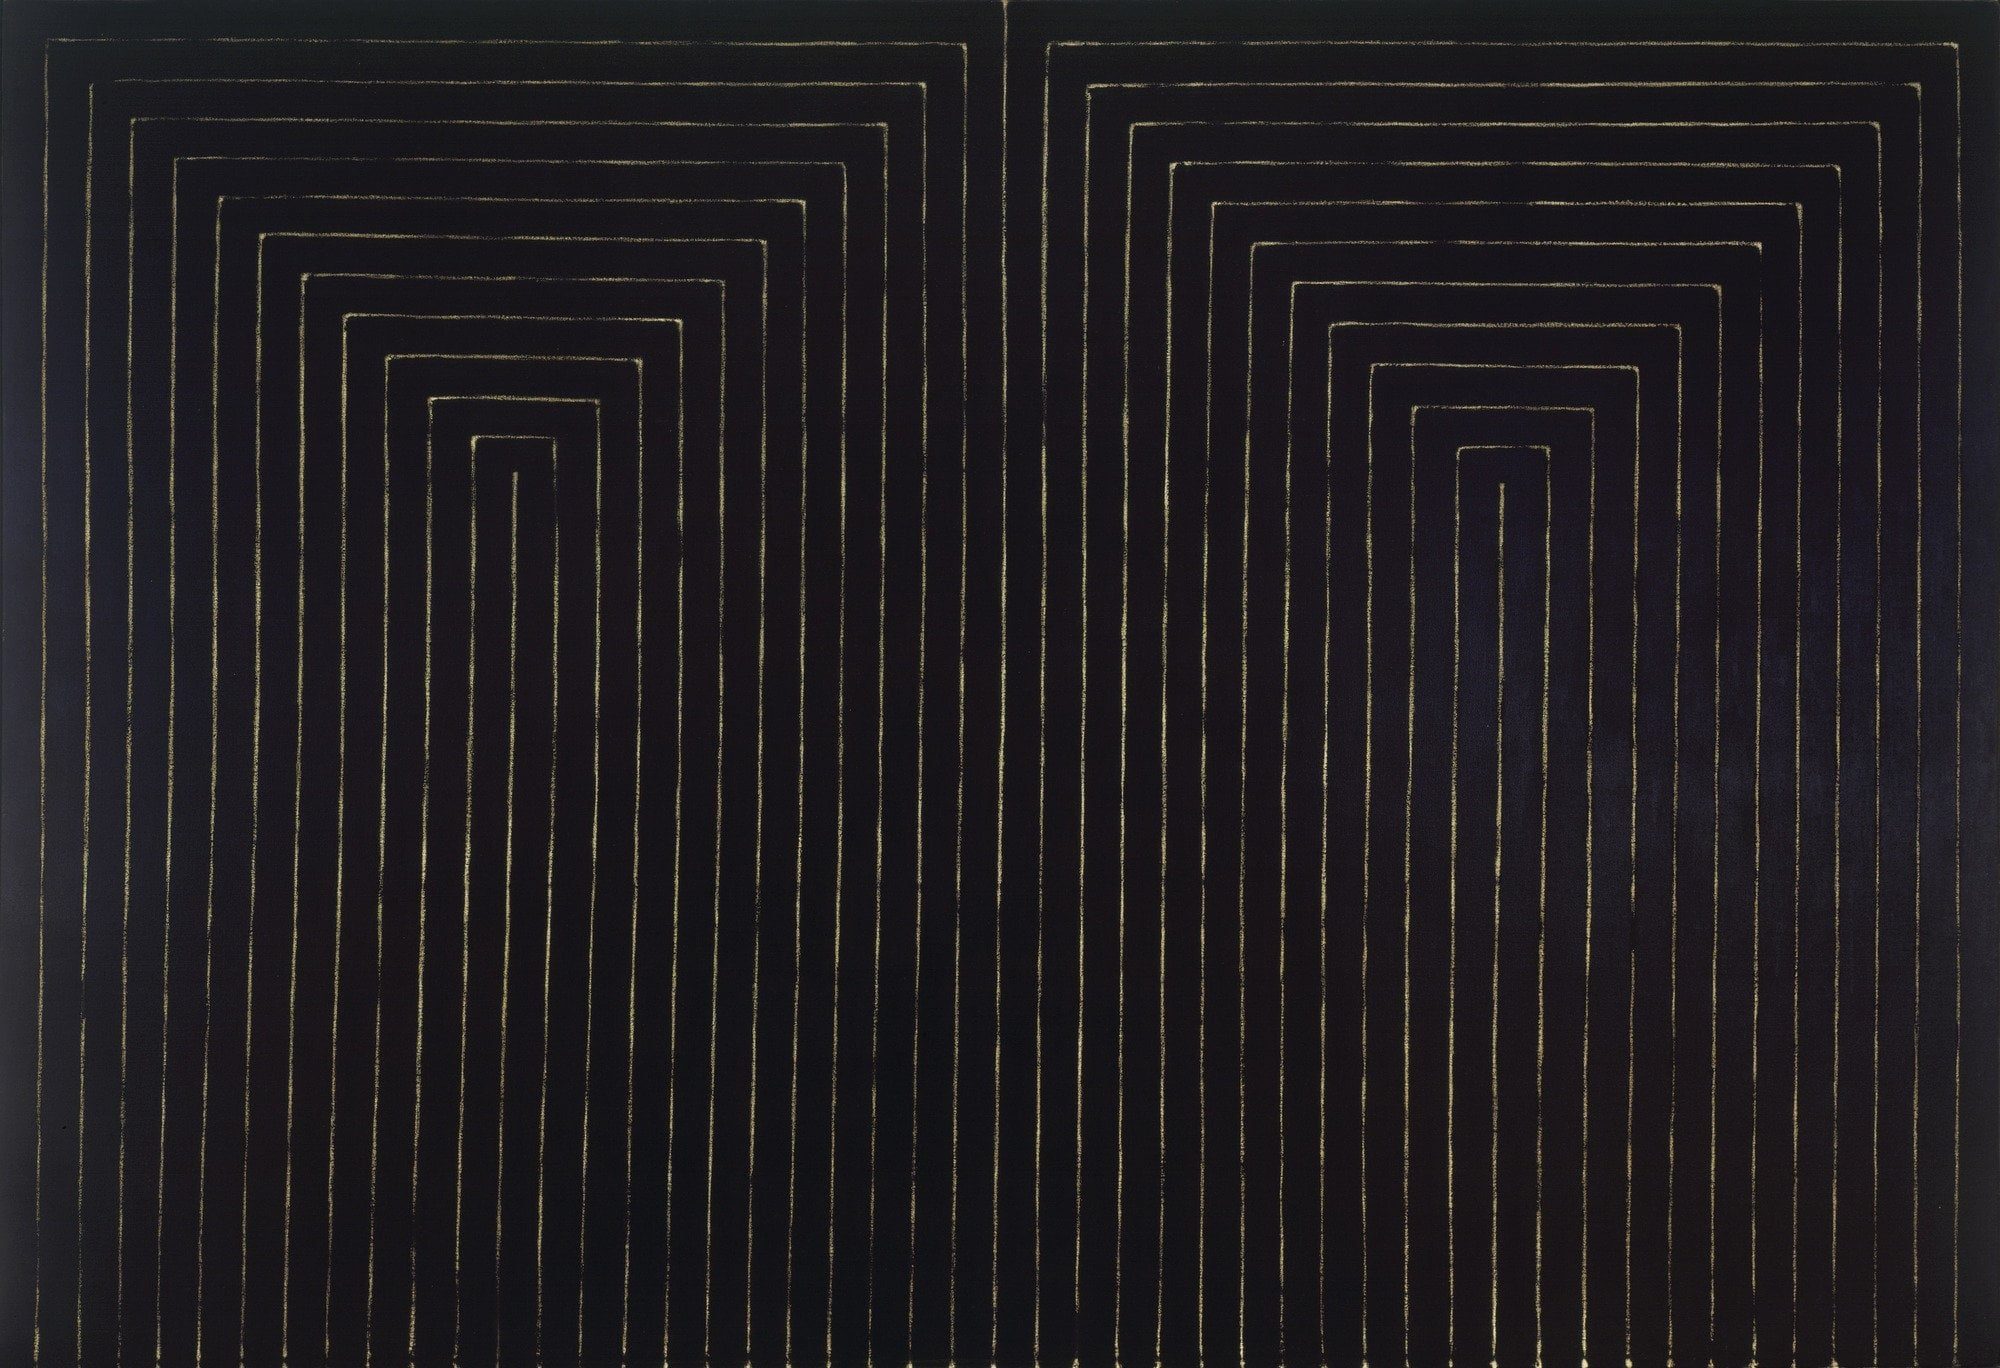 Frank Sella ,  Black Paintings, The Marriage of Reason and Squalor, II  1959. Enamel on canvas